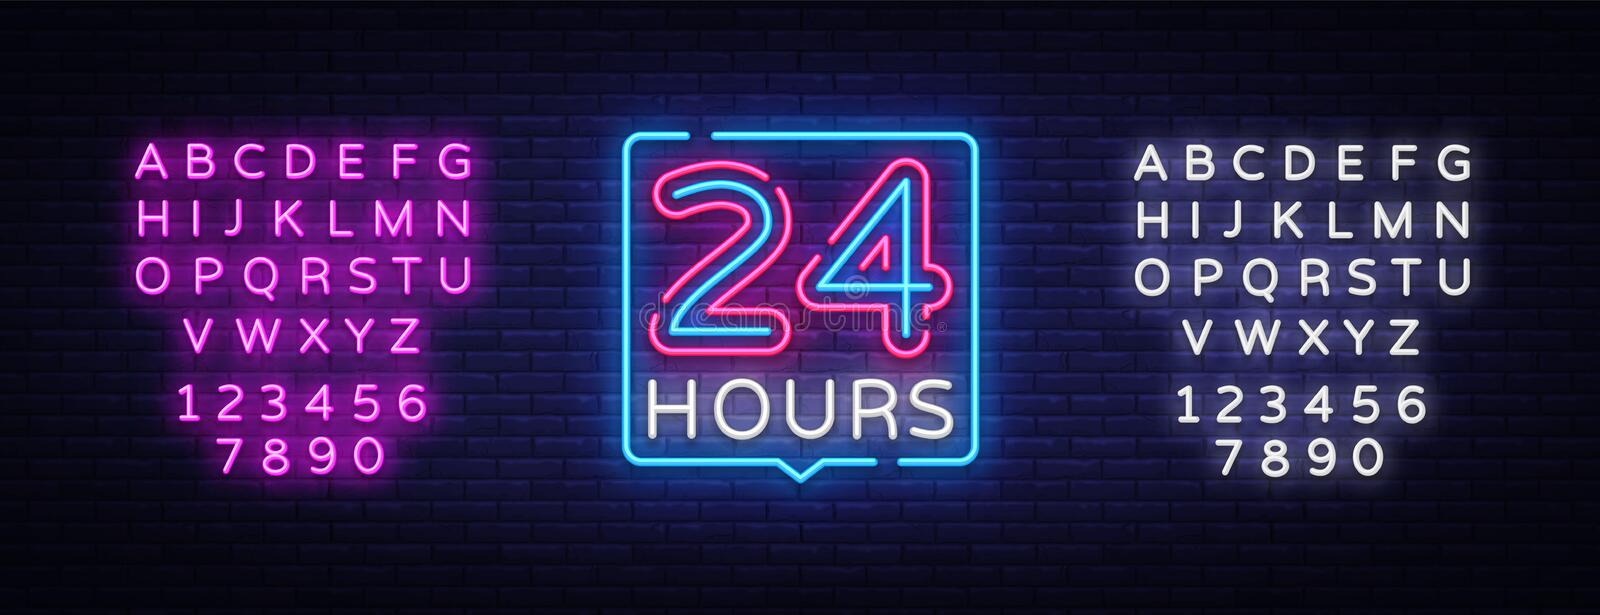 24 hours neon sign vector design template. 24 hours Open neon, light banner design element colorful modern design trend. Night bright advertising, bright sign stock illustration